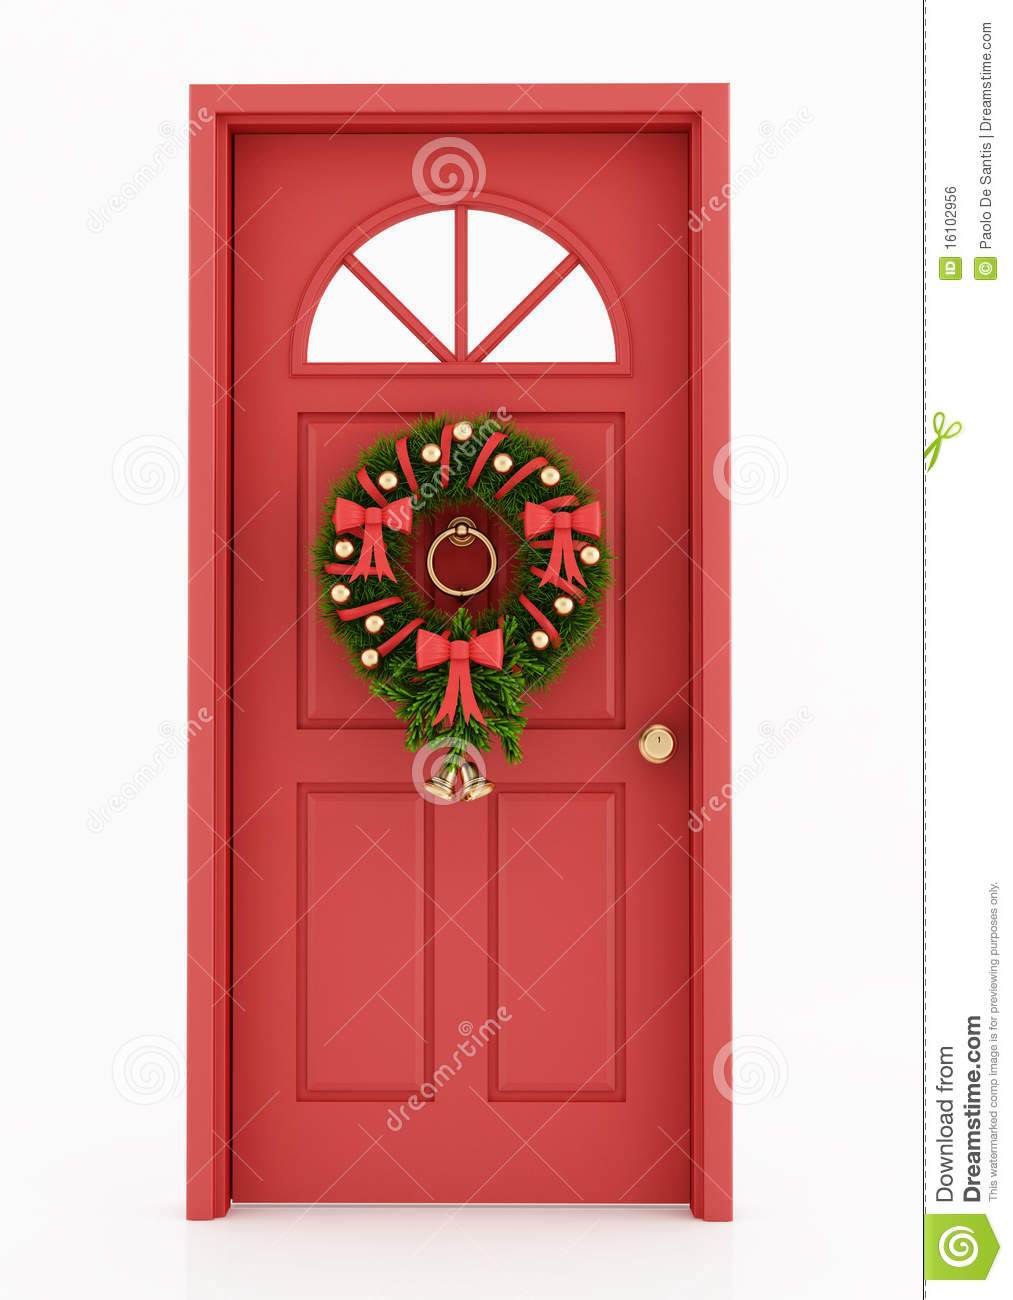 Entrance Door With Christmas Wreath Royalty Free Stock Image - Image ...